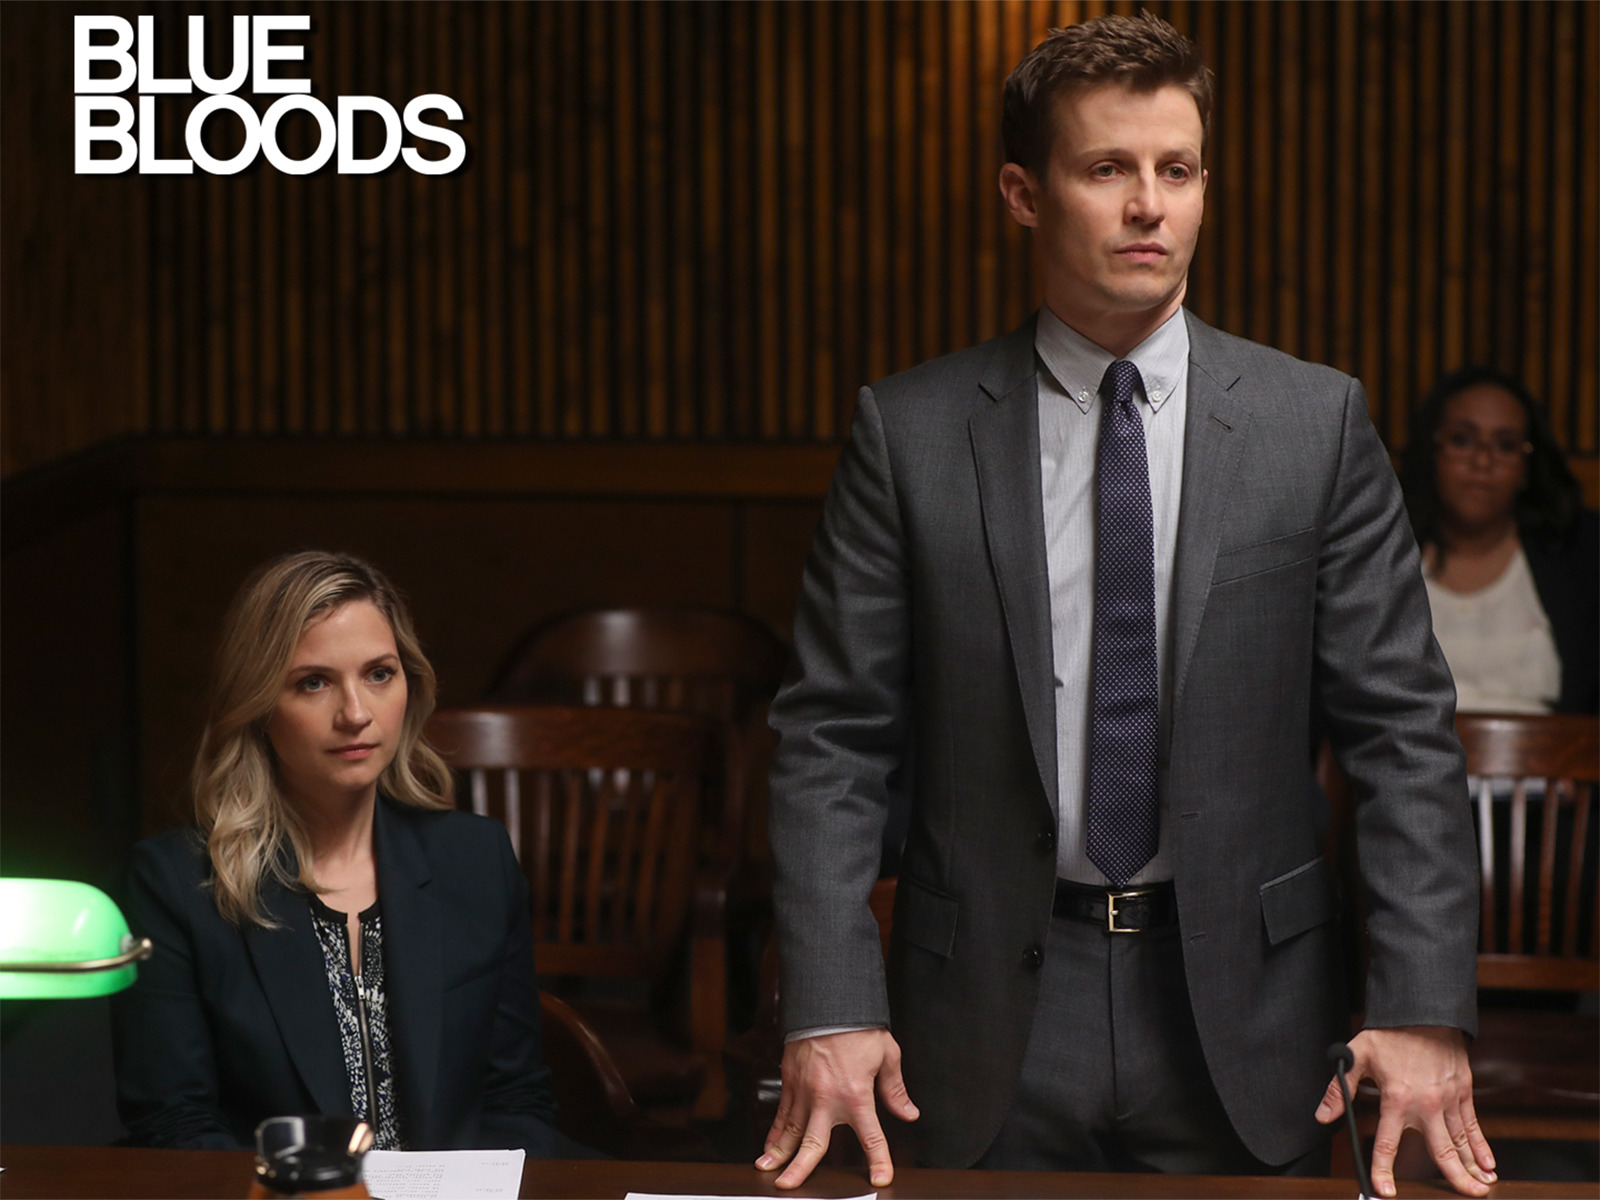 Prime Video: Blue Bloods, Season 8